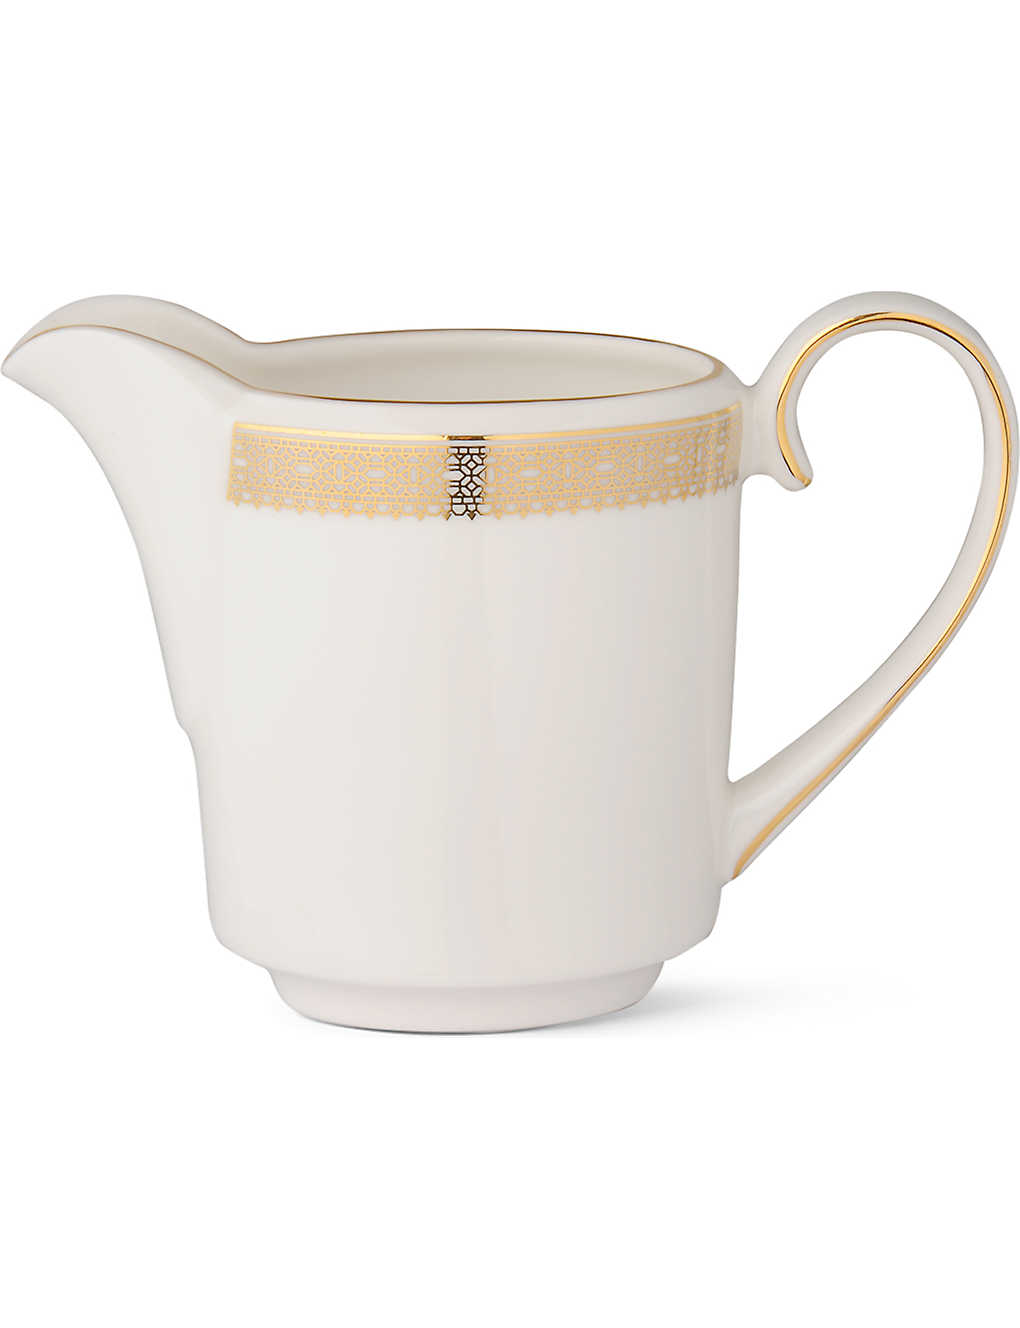 VERA WANG @ WEDGWOOD: Lace Gold cream jug